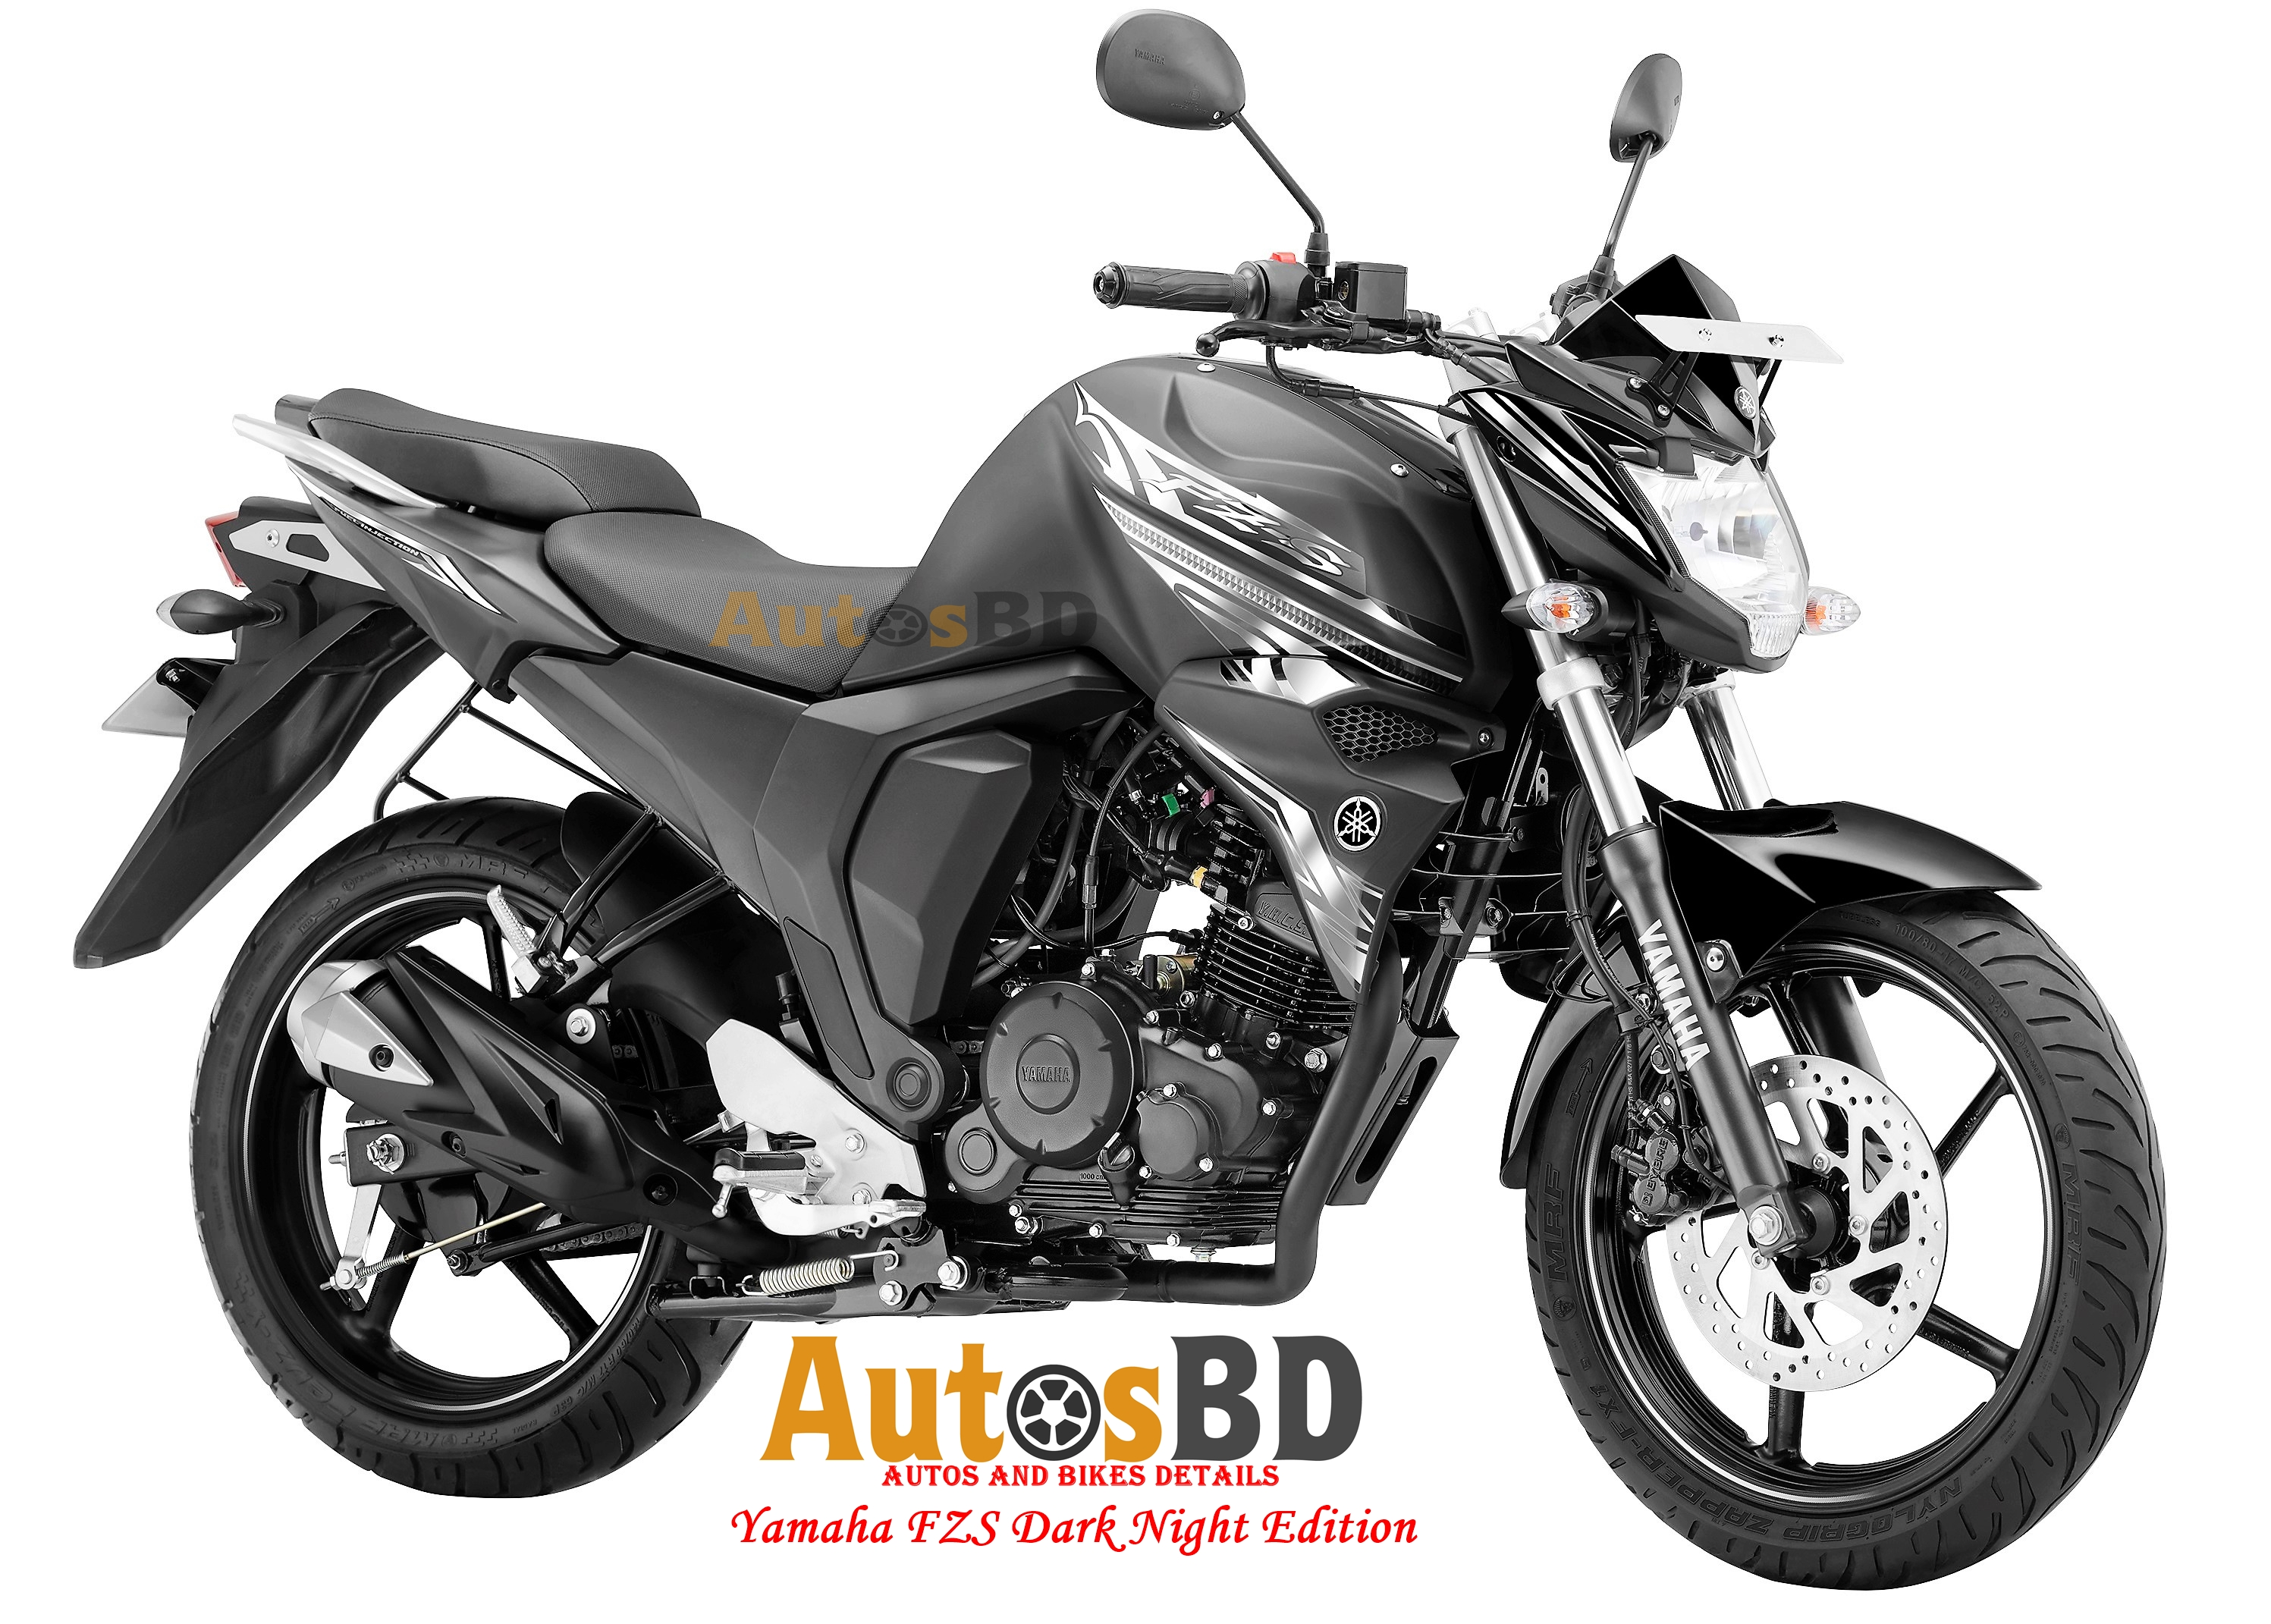 Yamaha FZS Dark Night Edition Motorcycle Price in Bangladesh